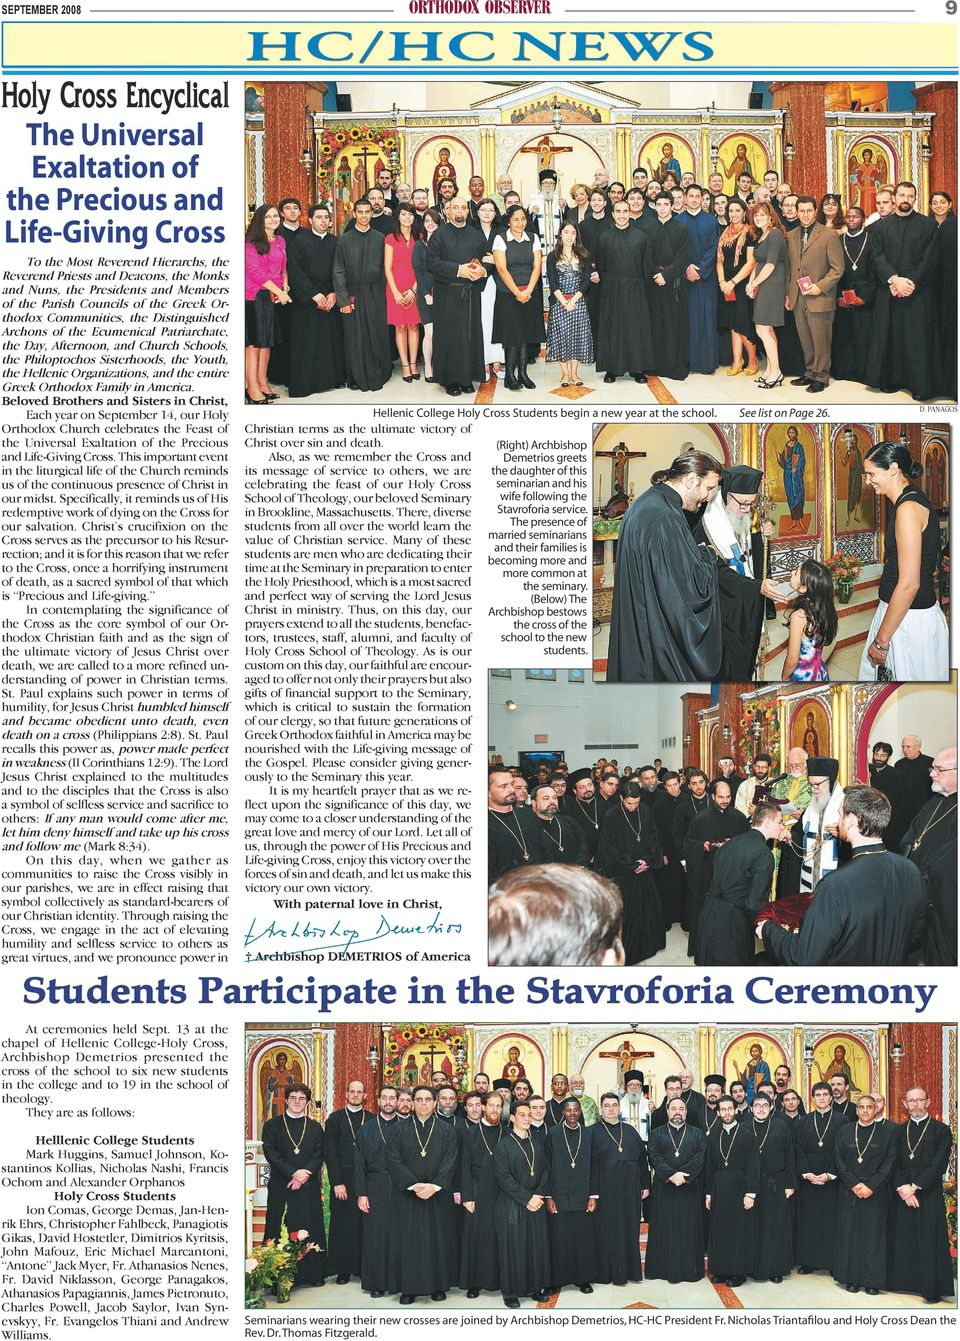 Sisterhoods, the Youth, the Hellenic Organizations, and the entire Greek Orthodox Family in America.